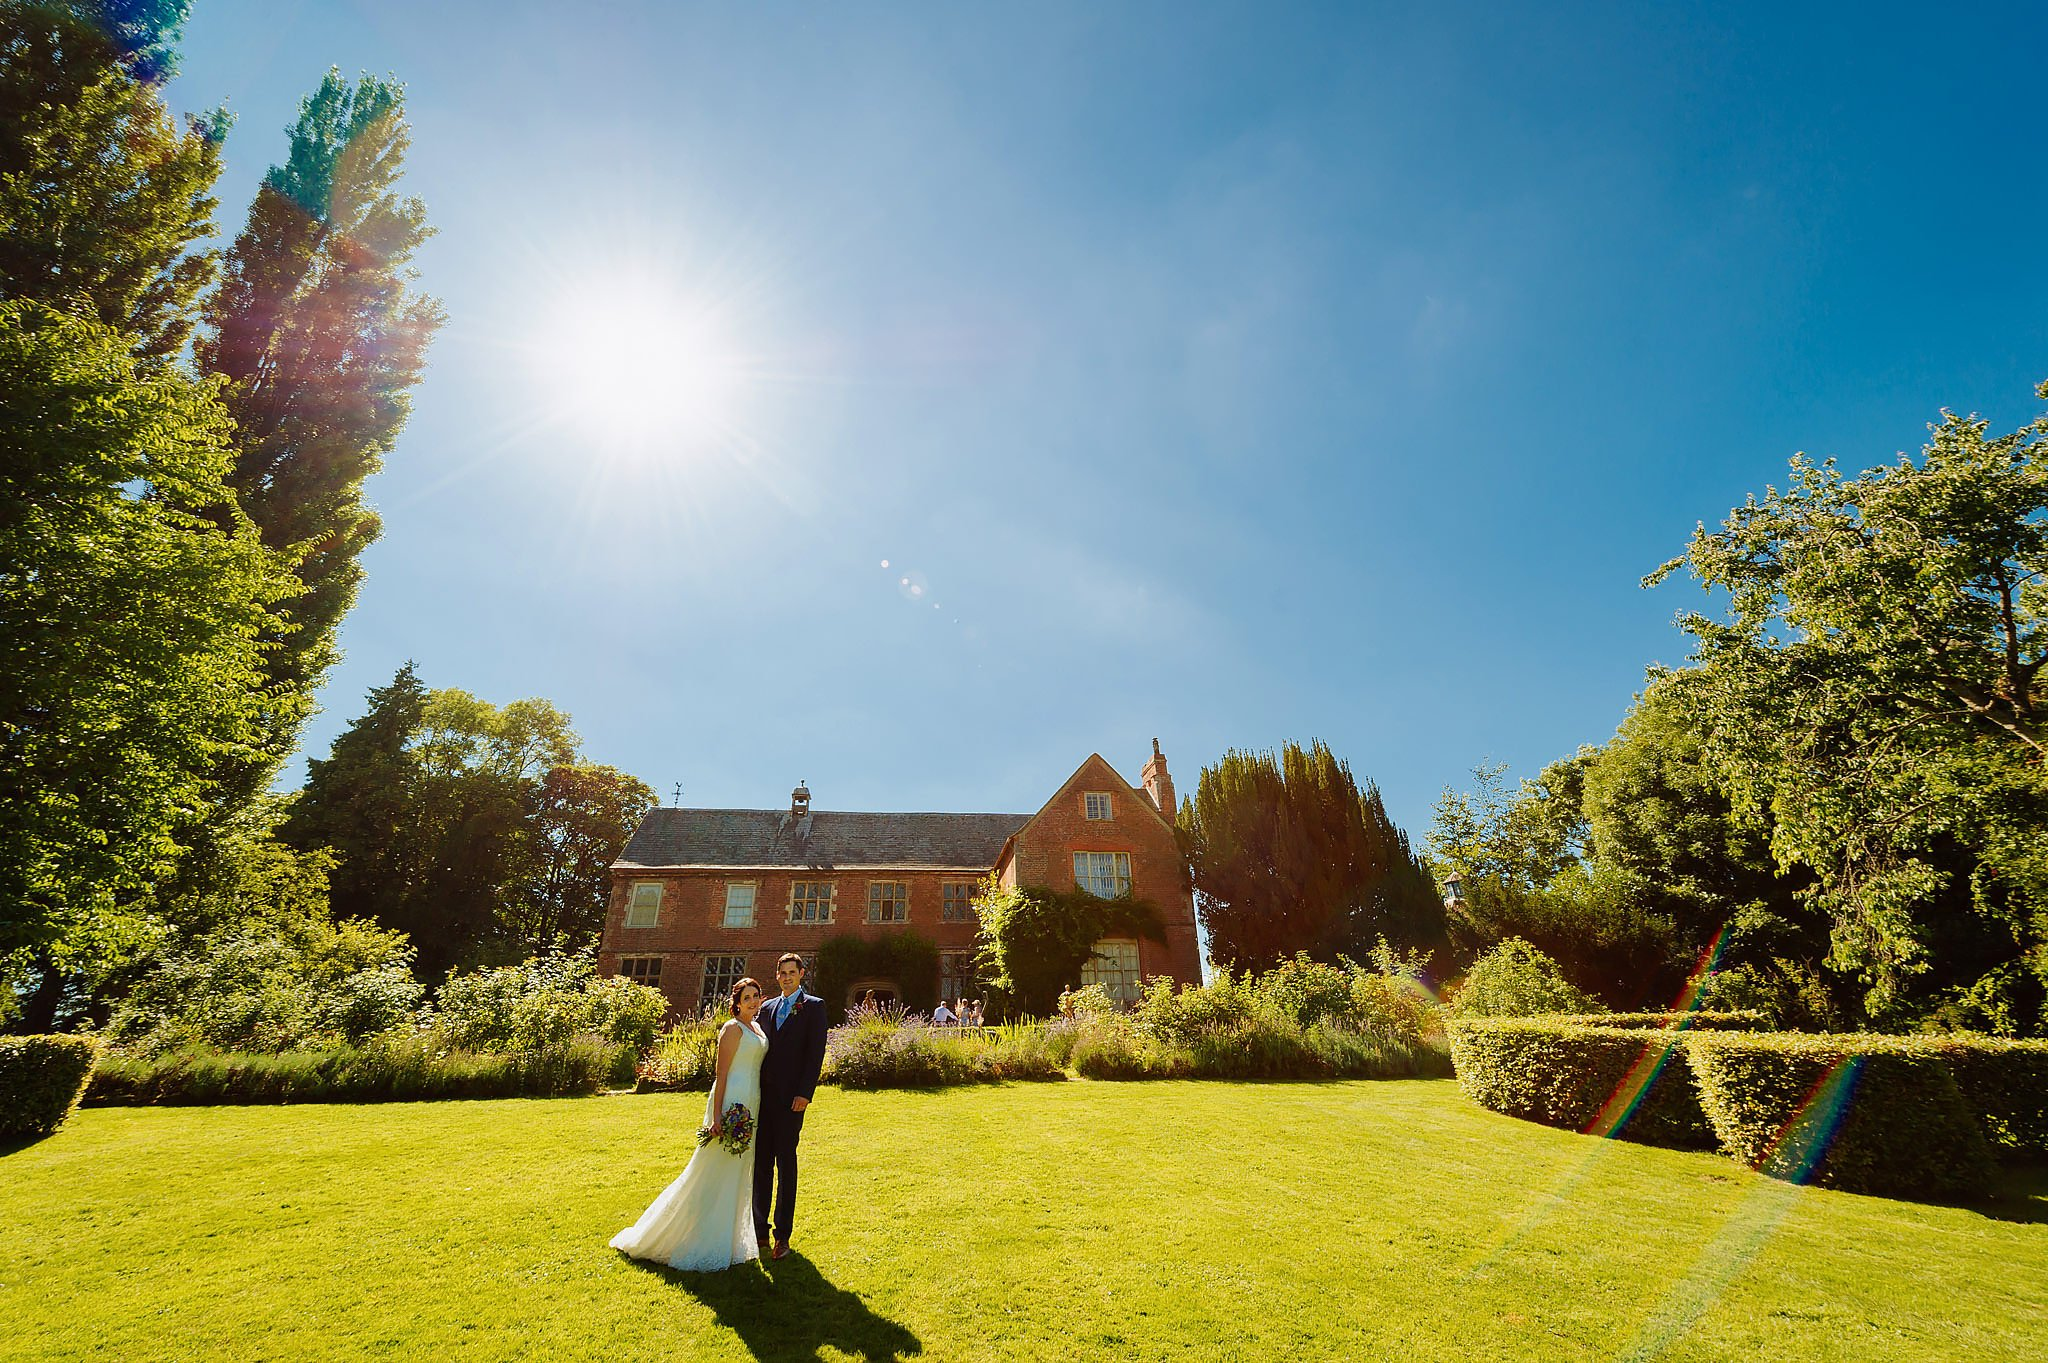 hellens manor wedding 73 - Wedding photography at Hellens Manor in Herefordshire, West Midlands | Shelley + Ian